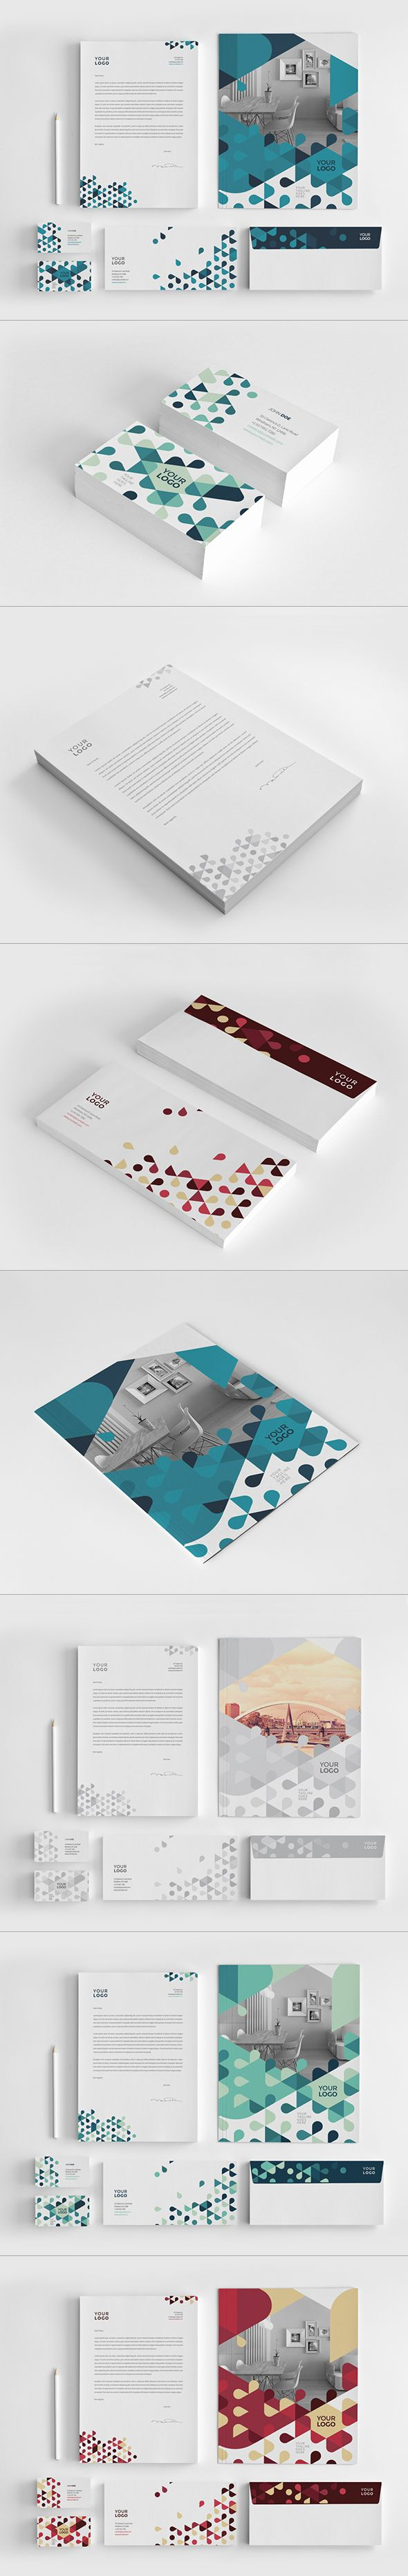 Young Modern Stationery. Download here: http://graphicriver.net/item/young-modern-stationery/8407744?ref=abradesign #design #stationery